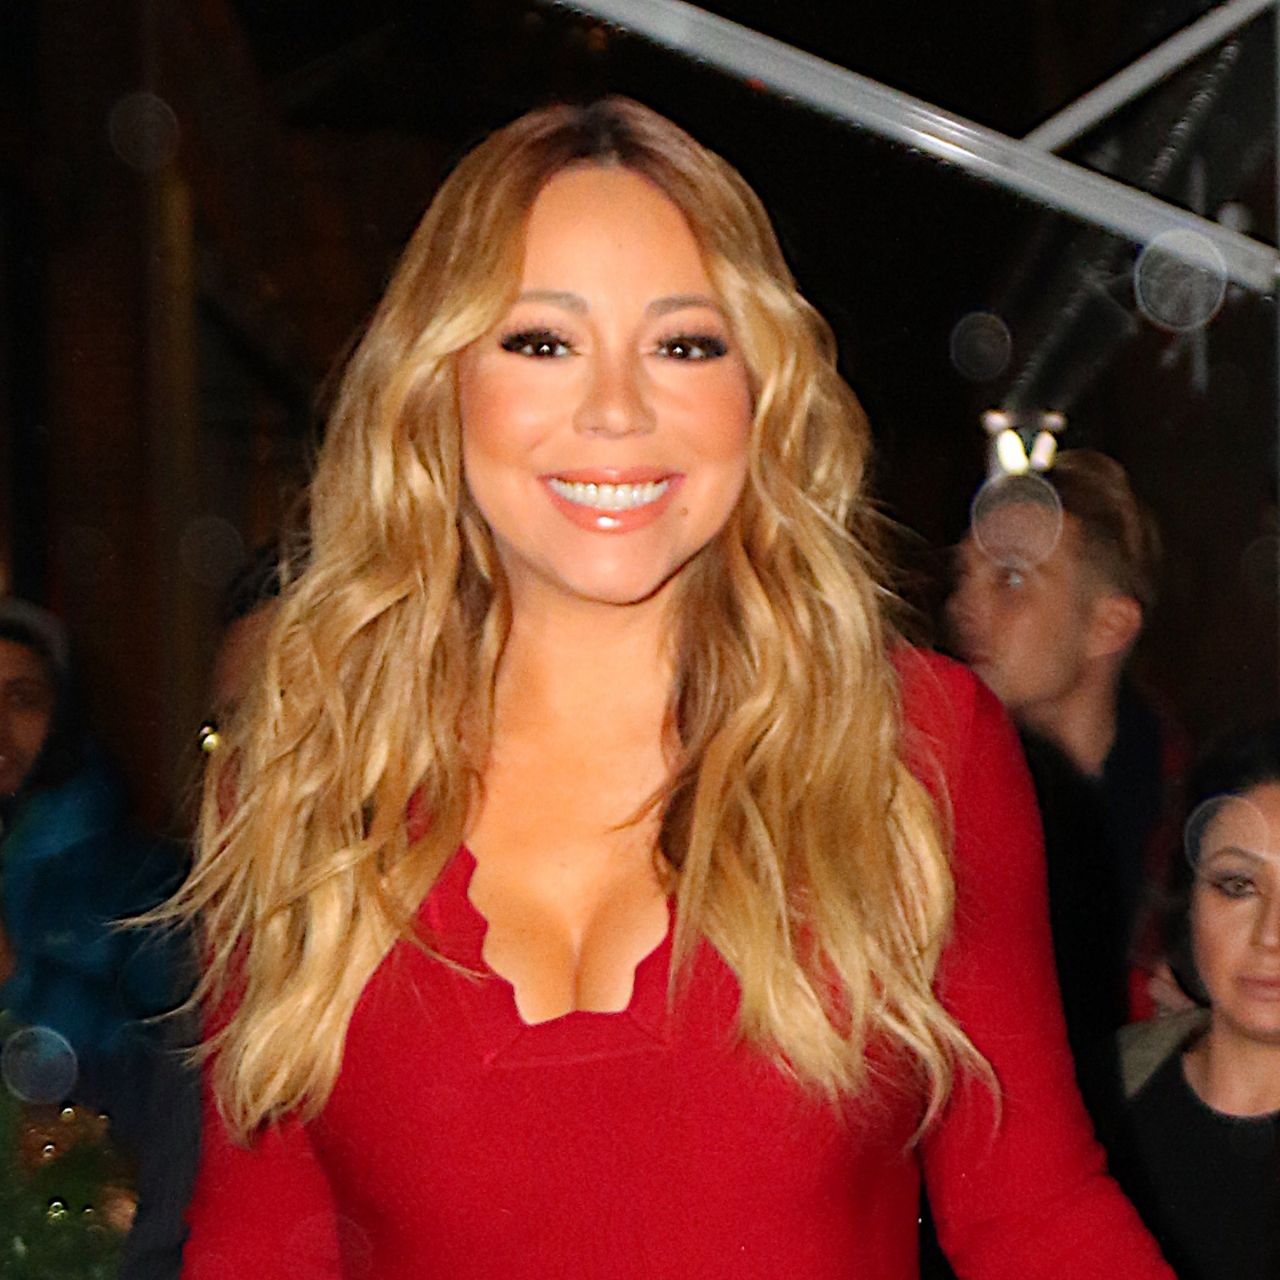 Carey - Heads to Pier 1 in Red Dress for Christmas Book Event in ...